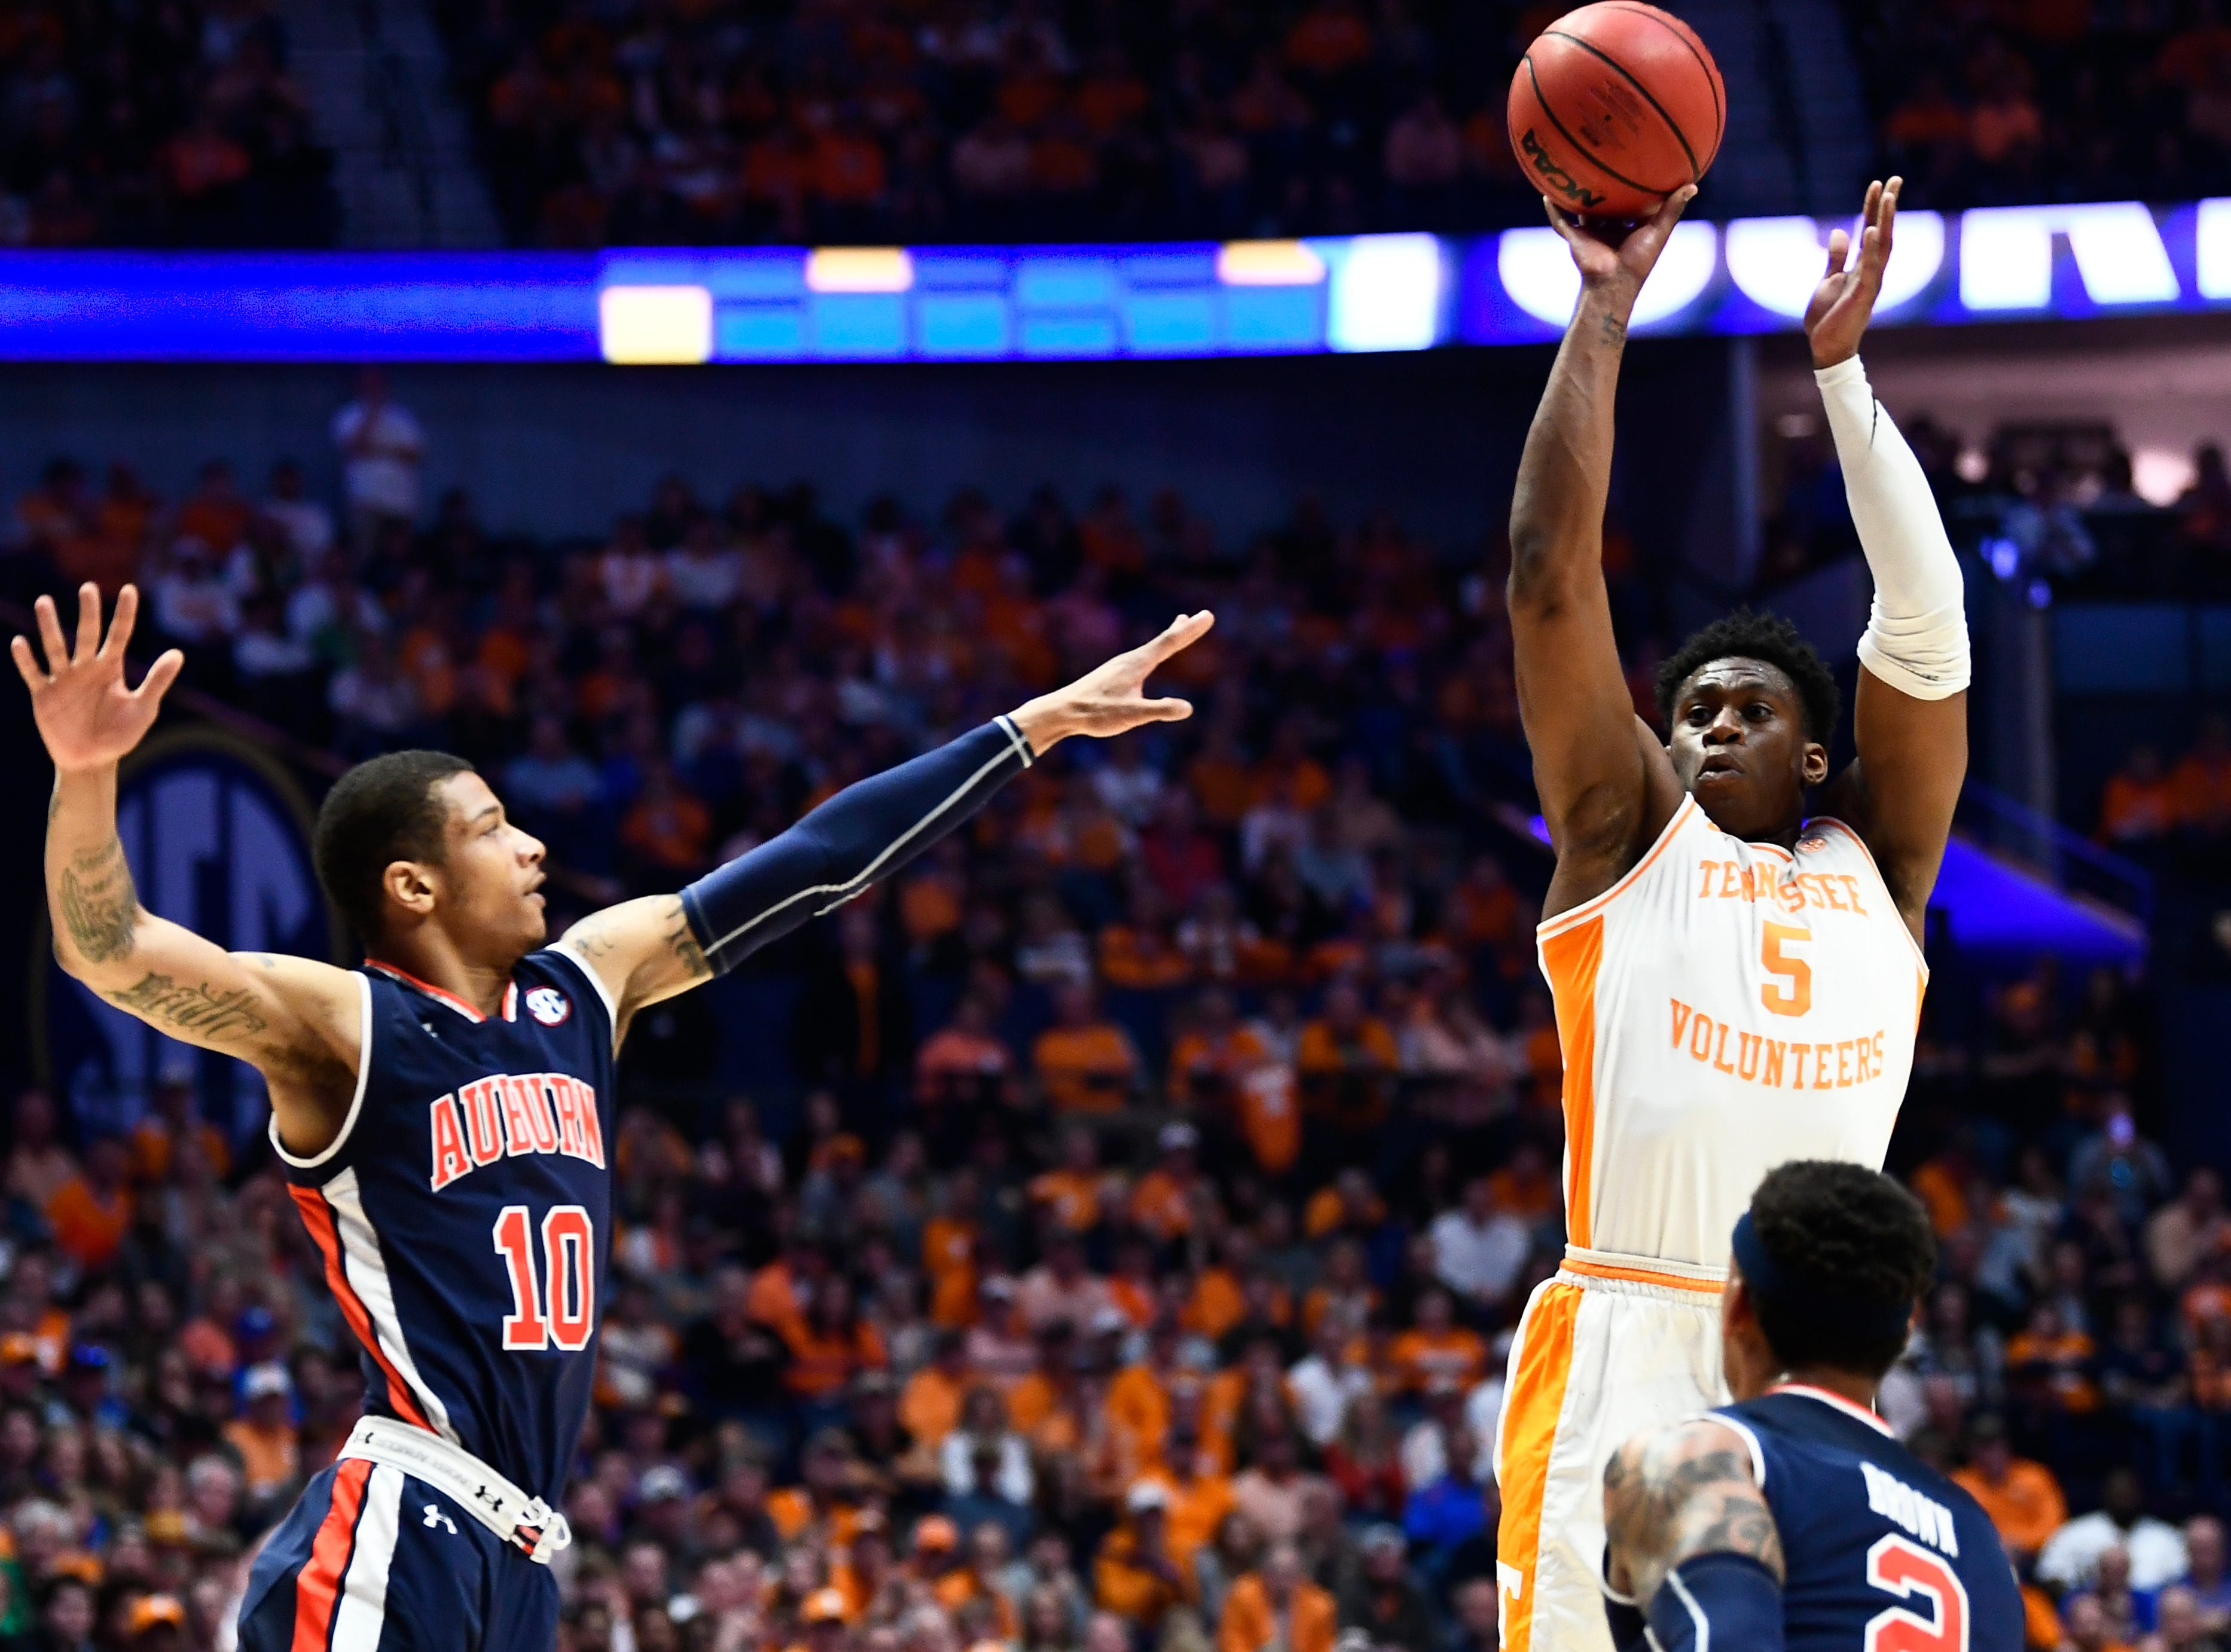 Tennessee guard Admiral Schofield (5) takes a shot while defended by Auburn guard Samir Doughty (10) and Auburn guard Bryce Brown (2) during the first half of the SEC Men's Basketball Tournament championship game at Bridgestone Arena in Nashville, Tenn., Sunday, March 17, 2019.